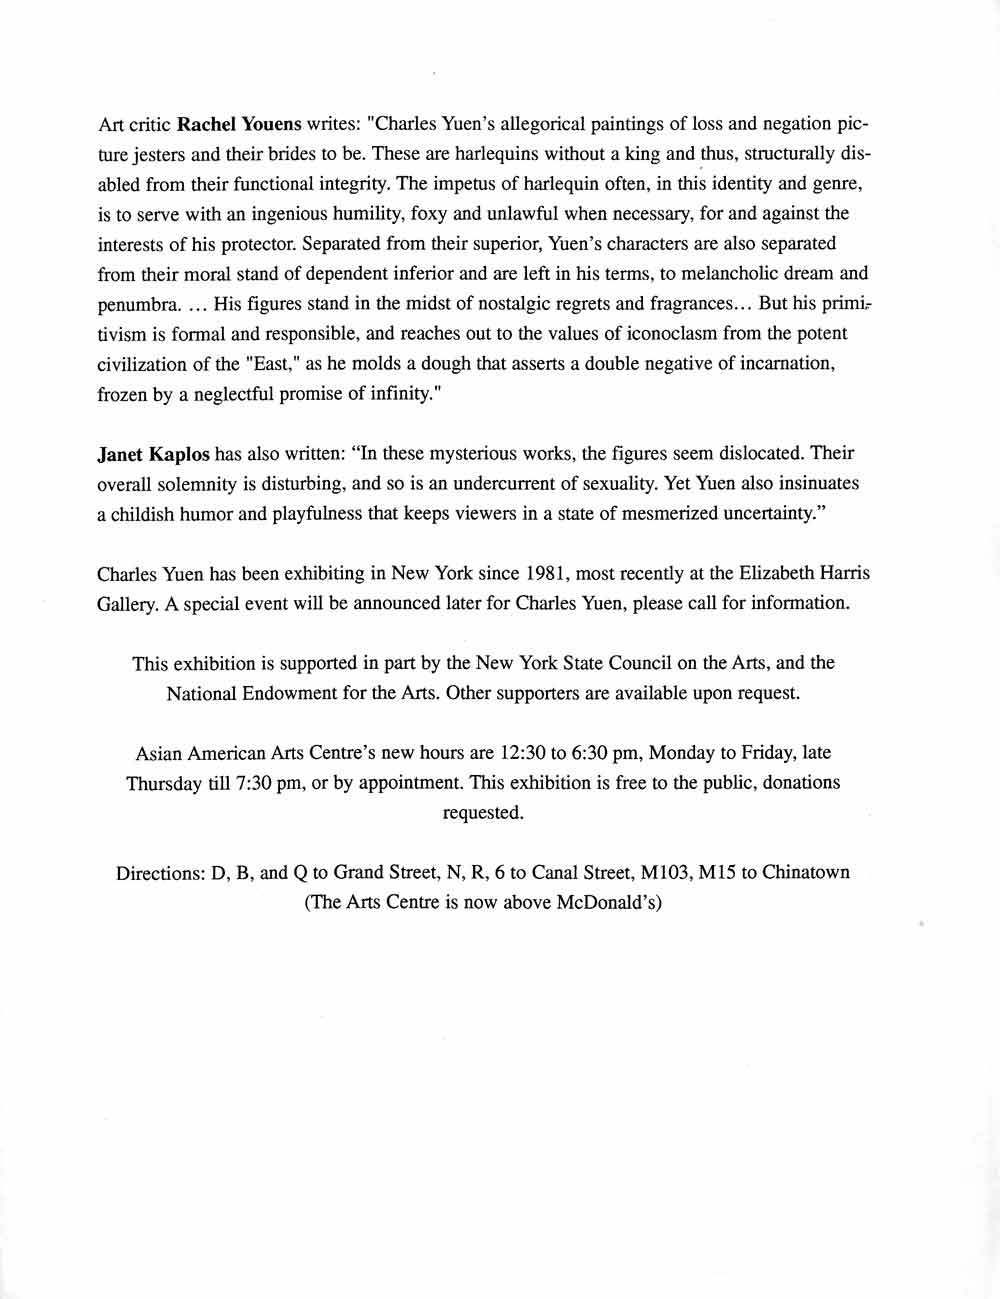 Point Arabesque press release, pg 2